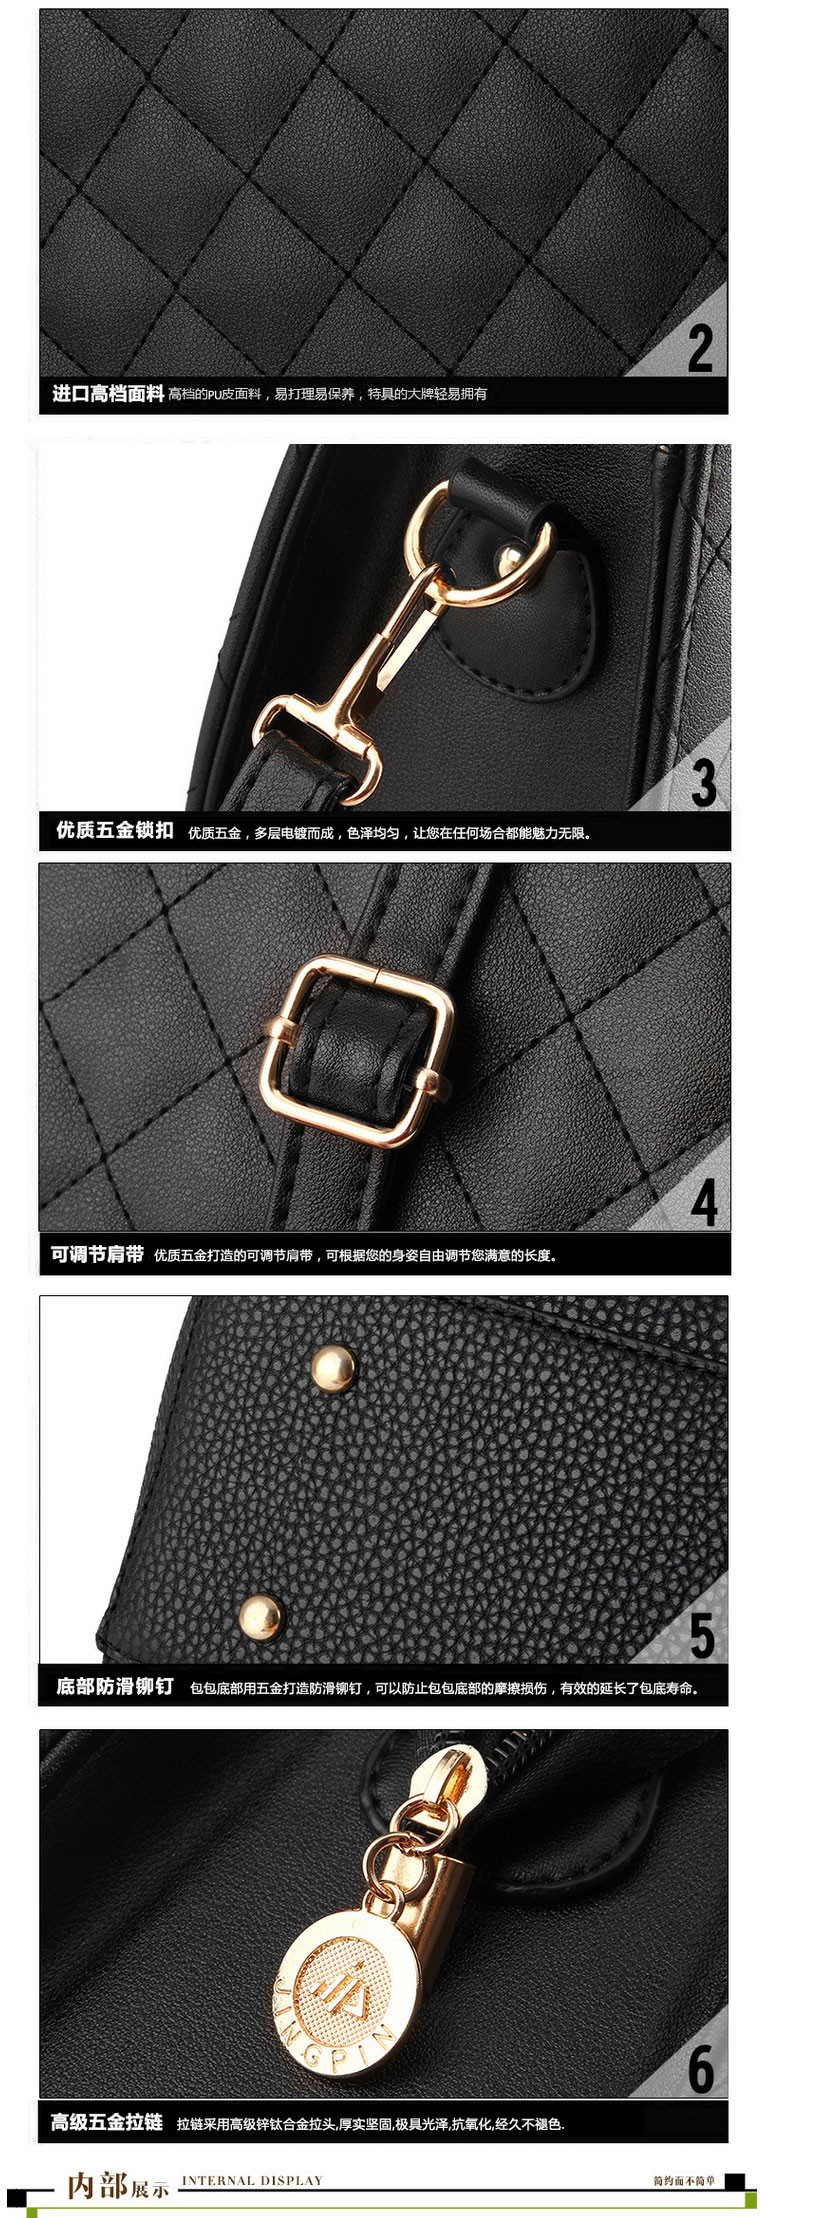 f3fc92aa7248 Shoulder messenger bag High Quality genuine leather bags handbags women  famous brands 2016 Fashion Ladies dollar price 1724